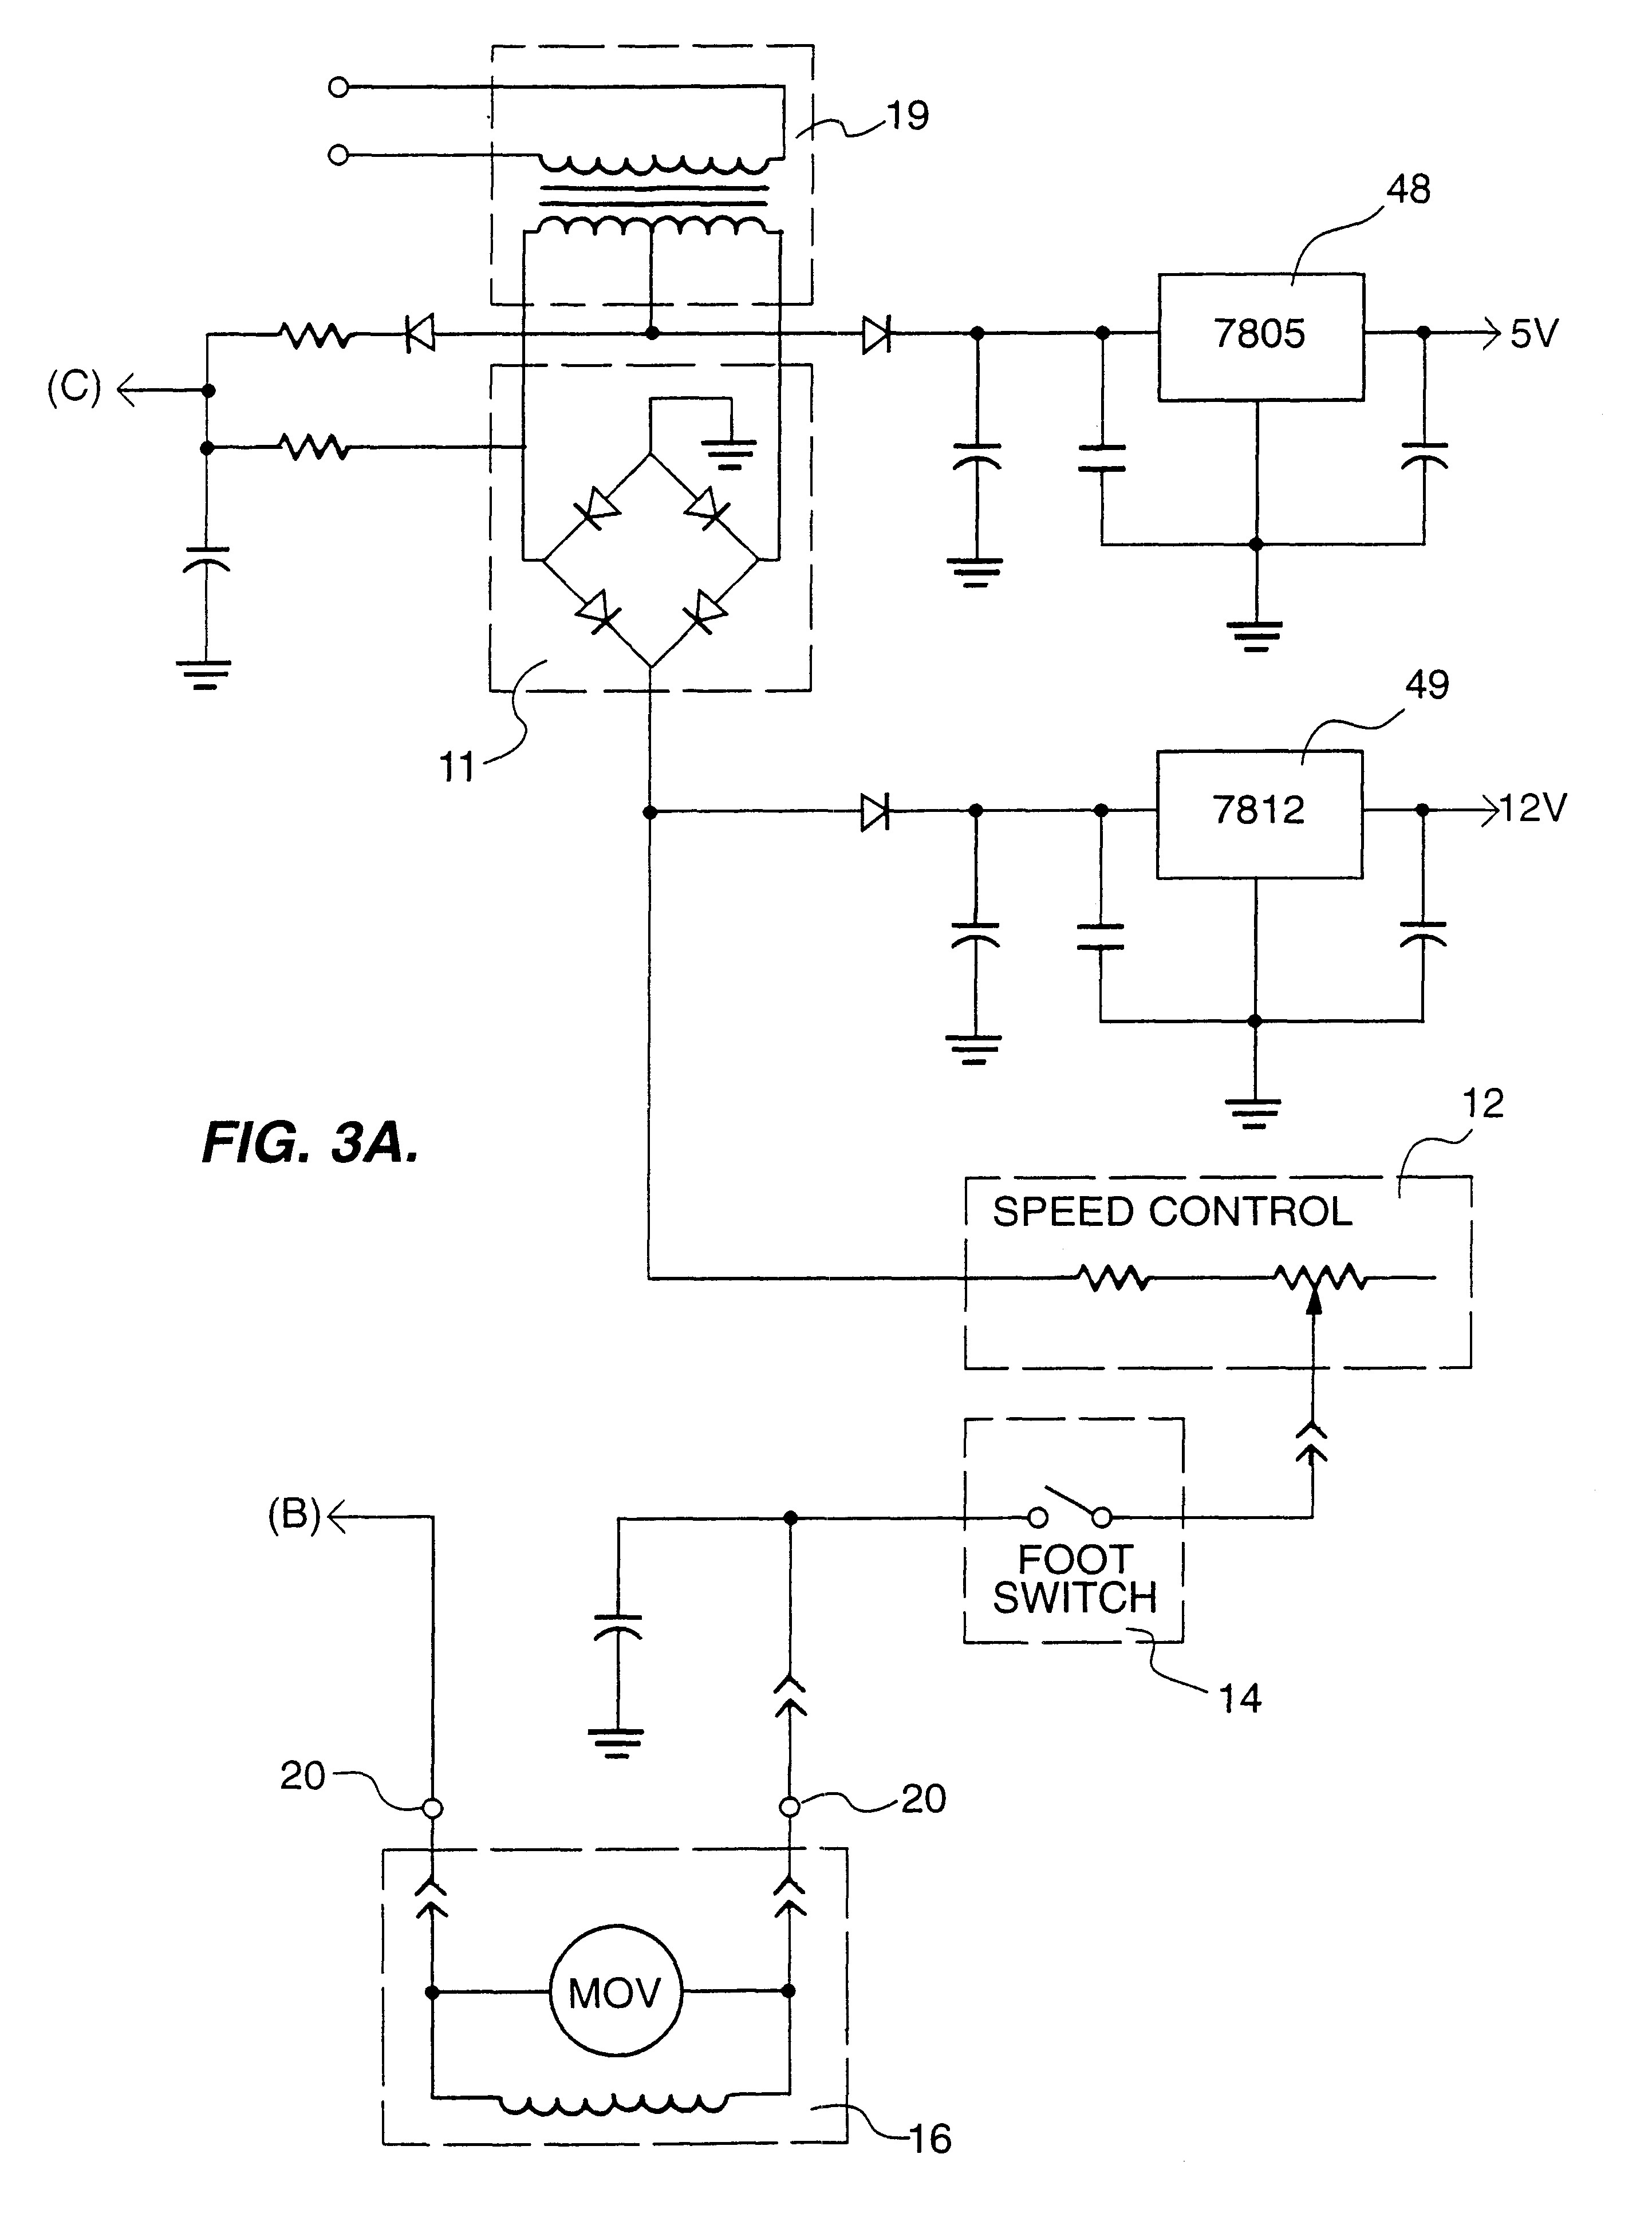 Tattoo Power Supply Wiring Diagram | Wiring Diagram Image on ignition switch schematic, tattoo power supply fuse, tattoo power supply connection, tattoo power supply box, tattoo power unit, tattoo power supply layout, tattoo sketches and drawings, tattoo diagram, tattoo gun power supply hook up, tattoo power supply blueprint, tattoo machine schematic,